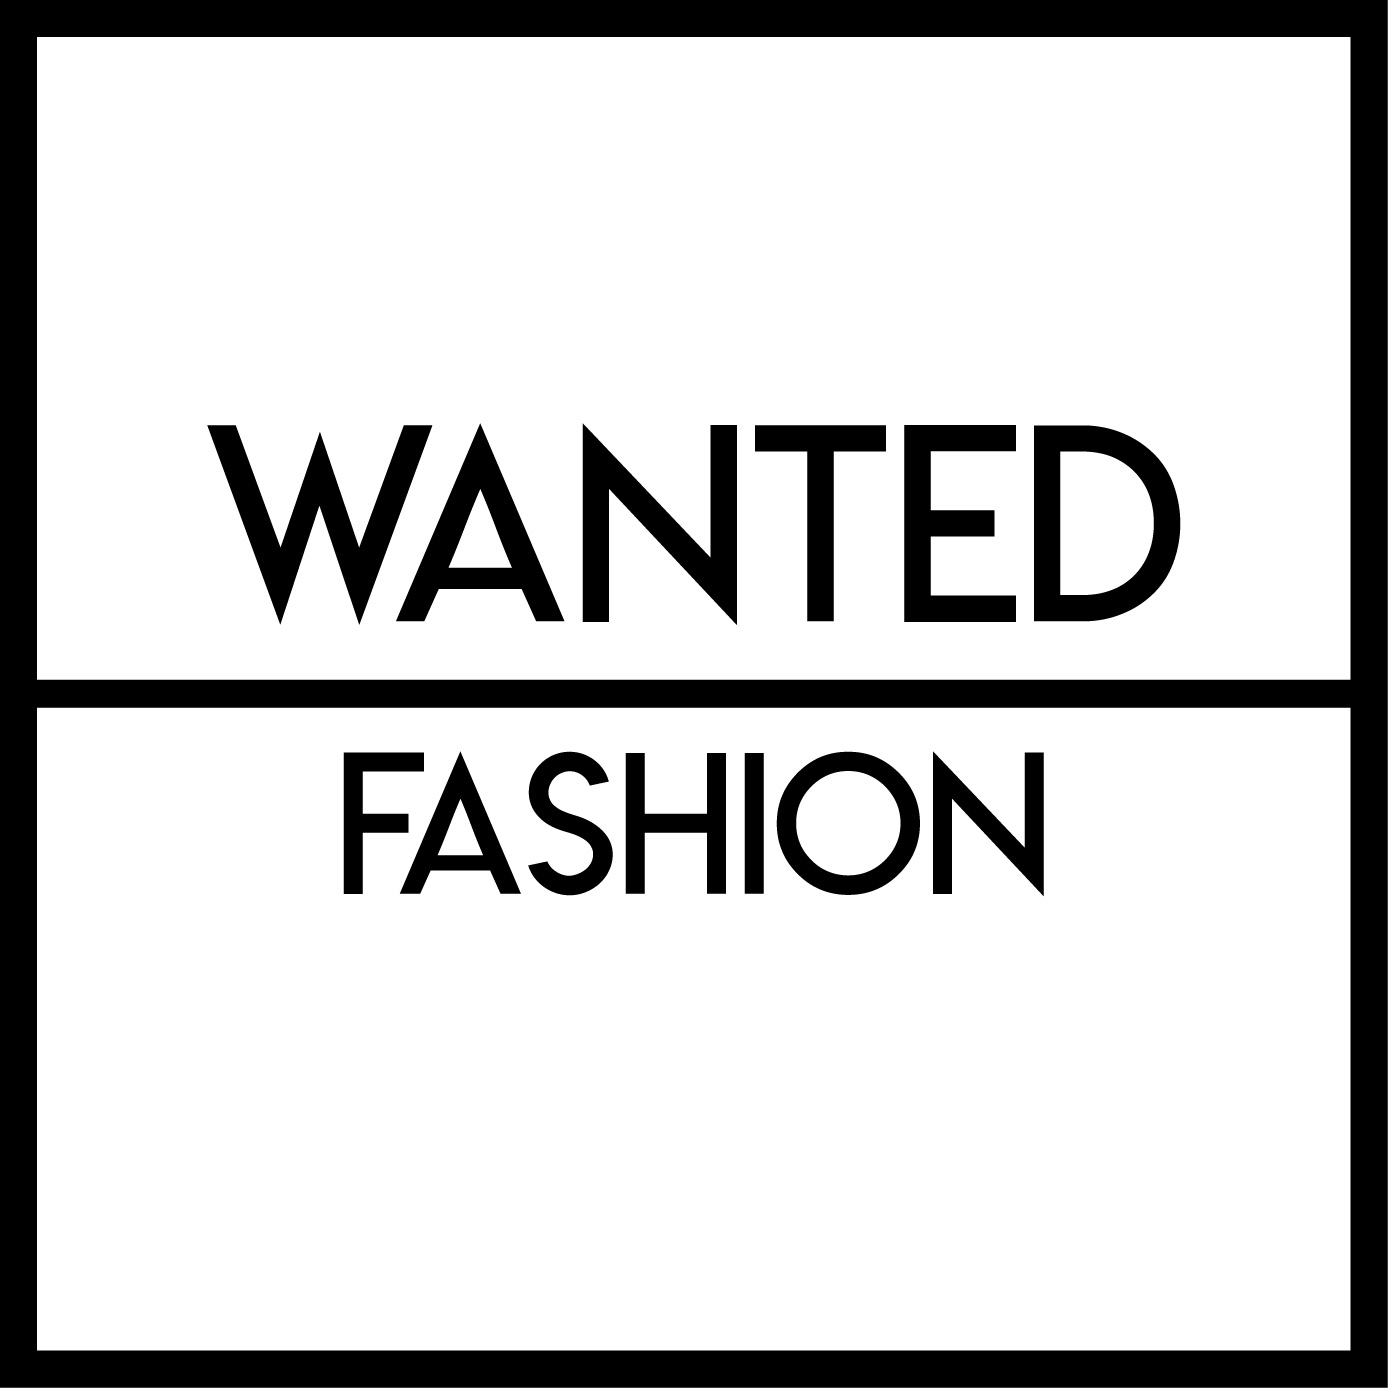 Wanted Fashion